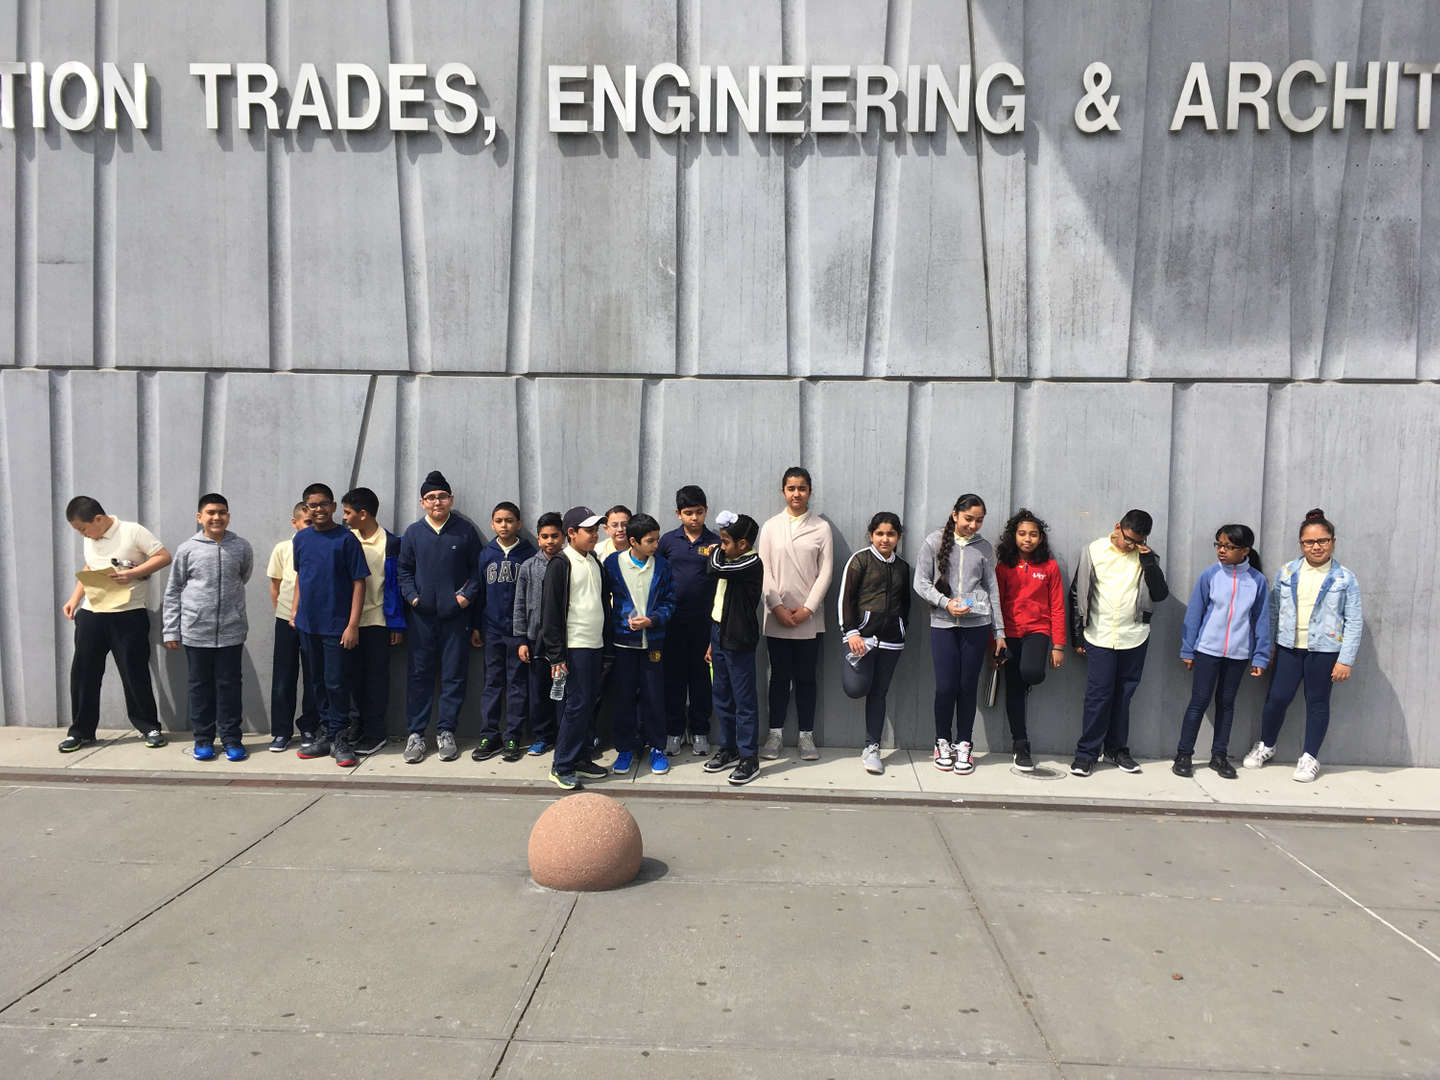 Students lined up outside the High School for Construction Trades, Engineering and Architecture